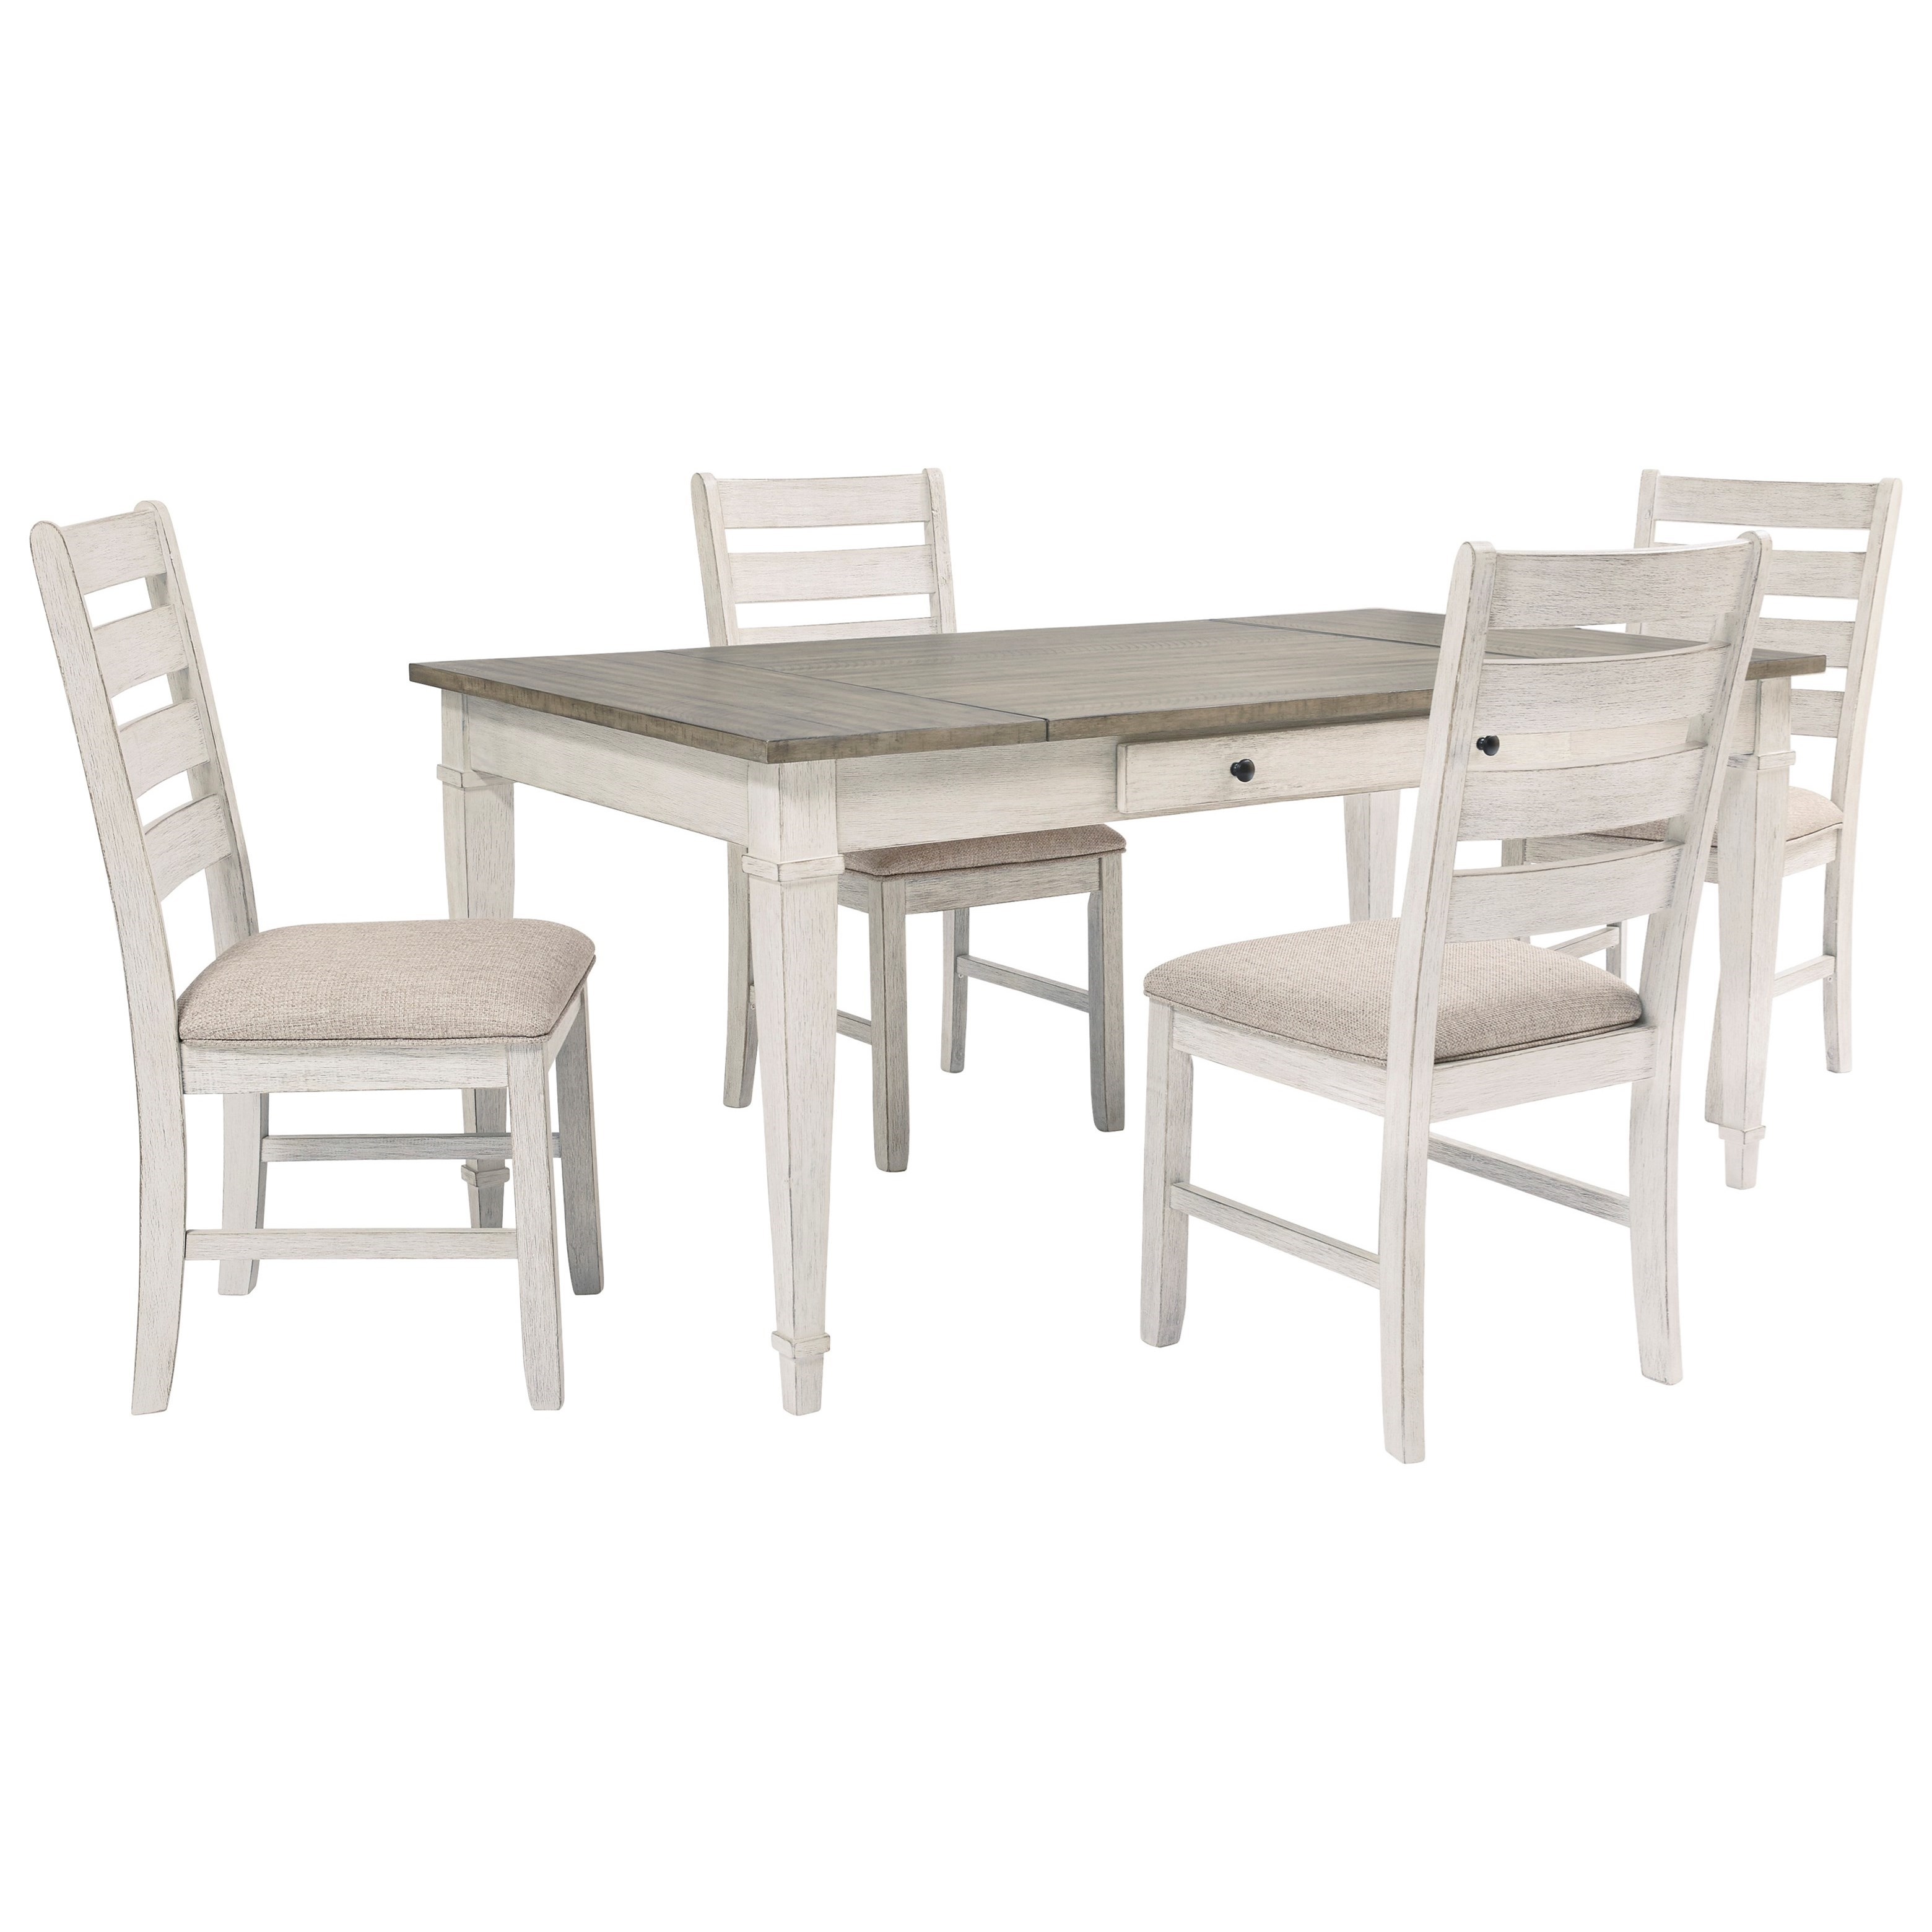 Skempton 5-Piece Rect. Dining Room Table w/ Storage by Signature Design by Ashley at Miller Home